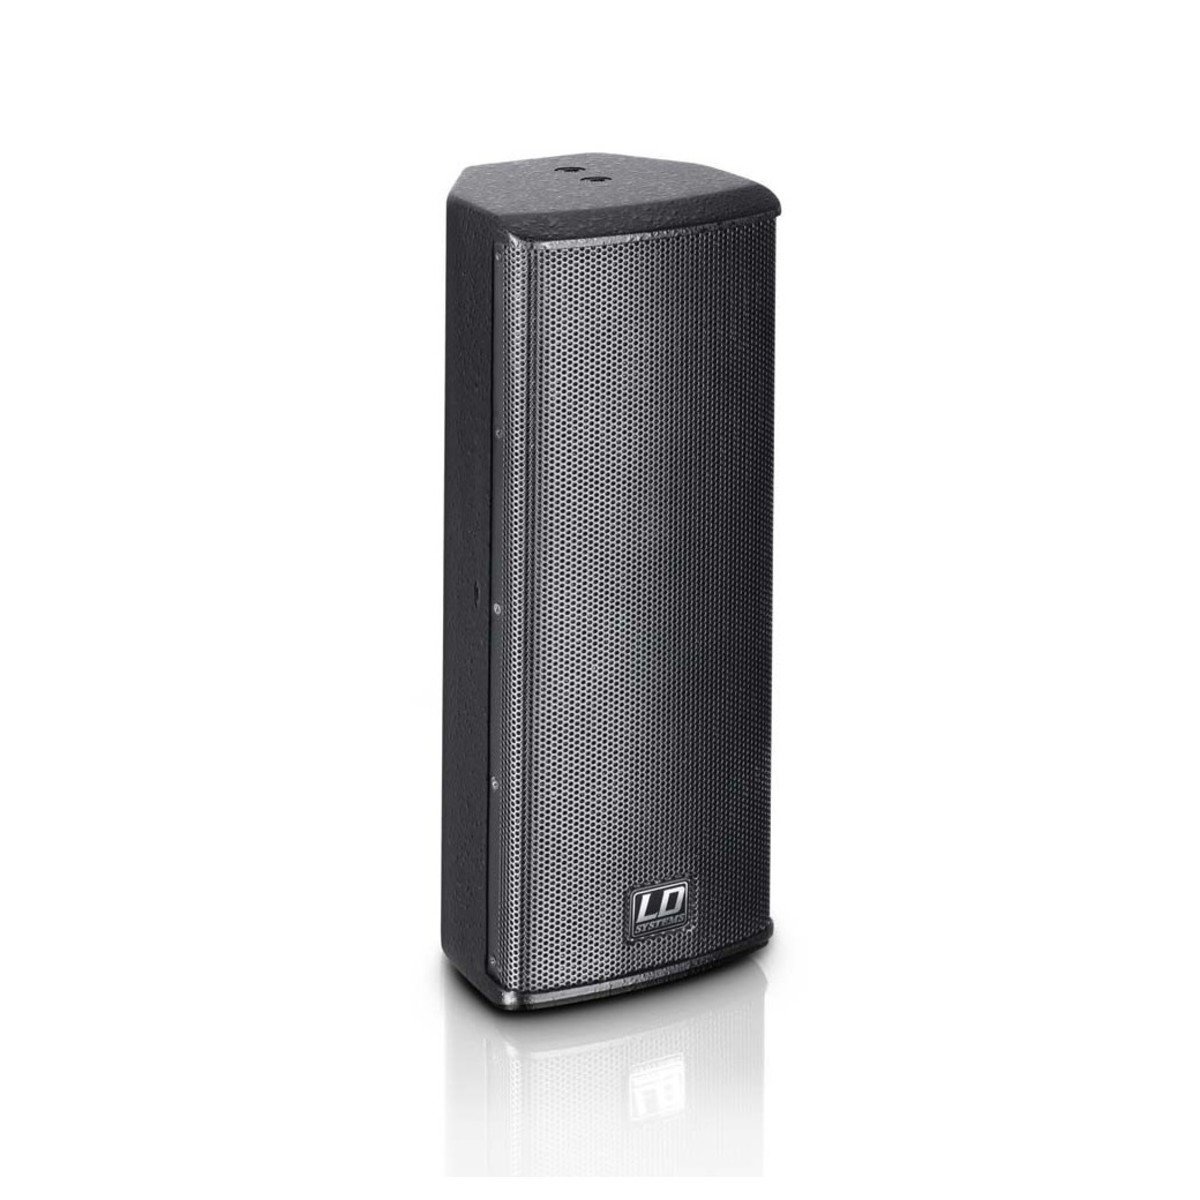 Ld Systems Sat242 2 X 4 Passive Installation Speaker Black